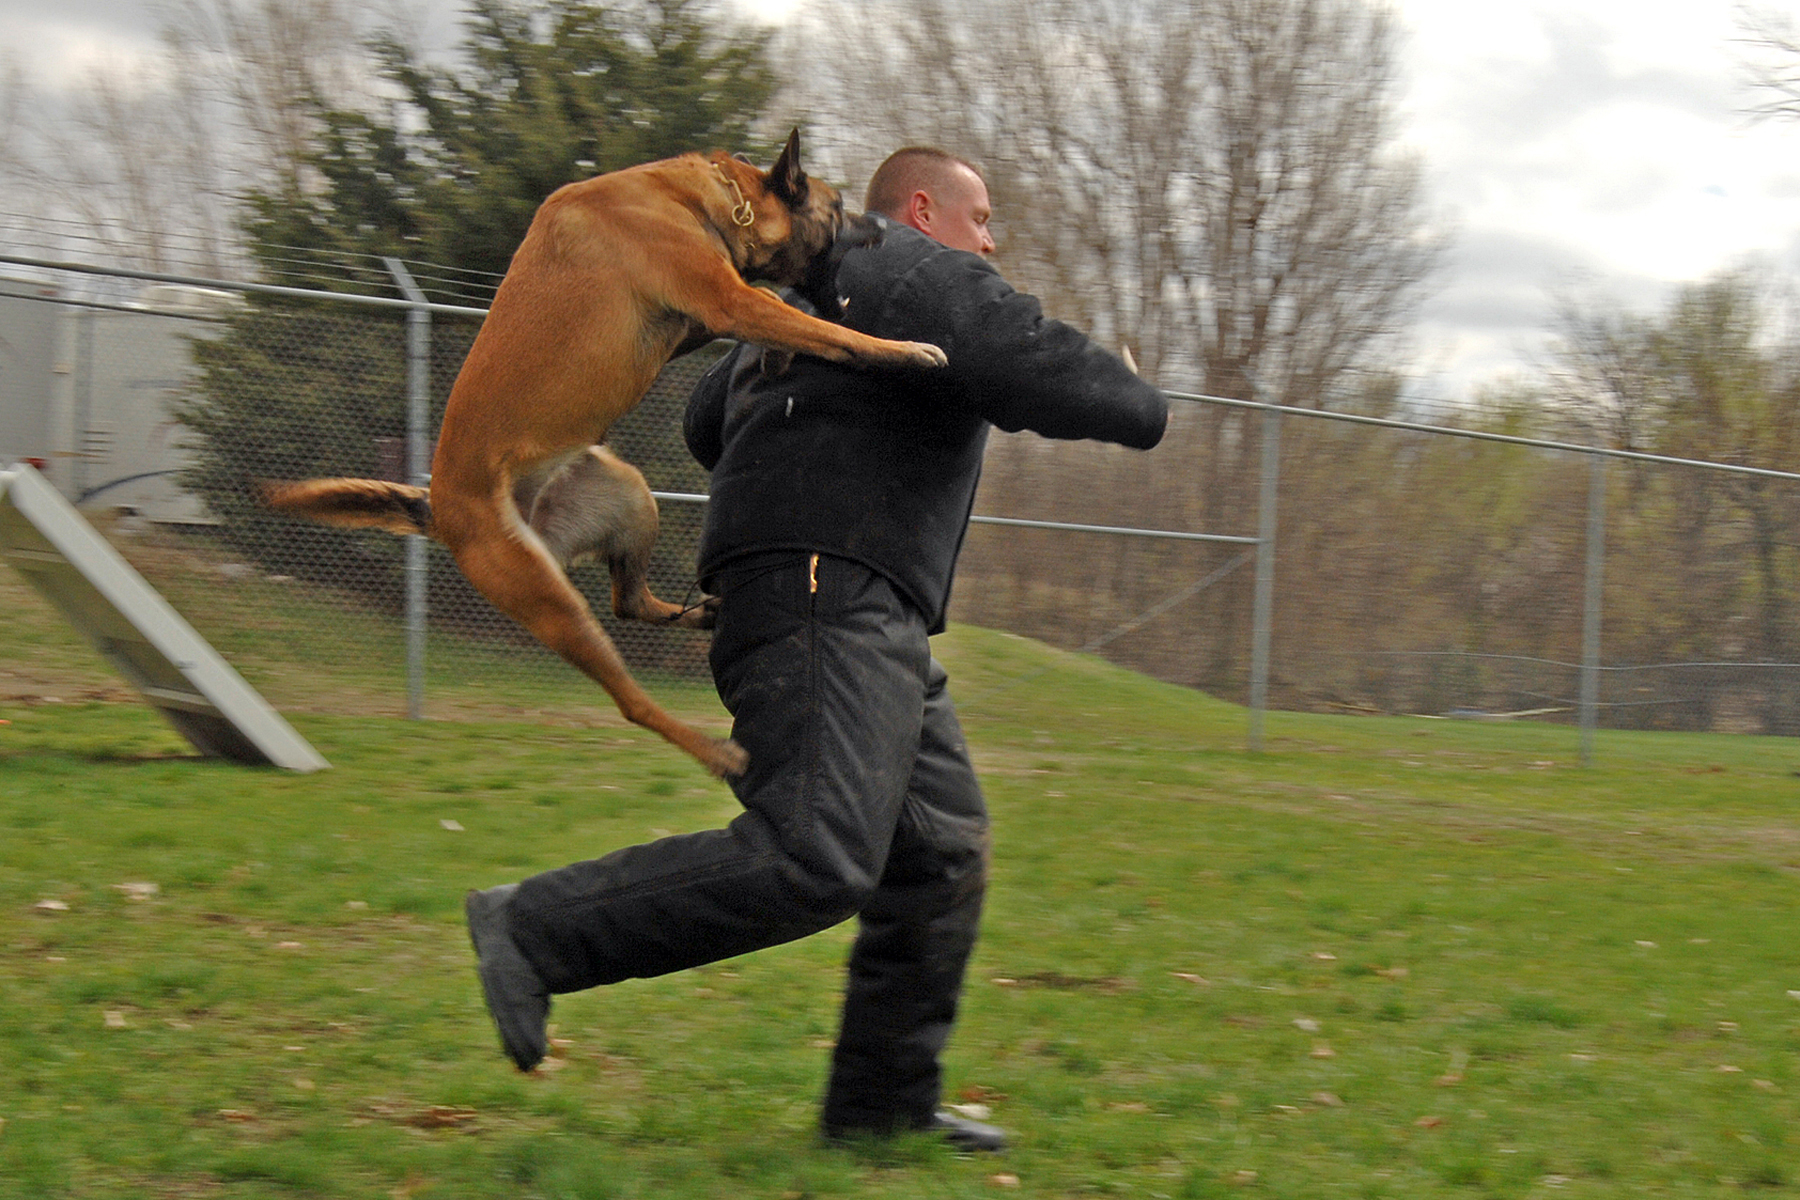 Datoteka police dog attack jpg